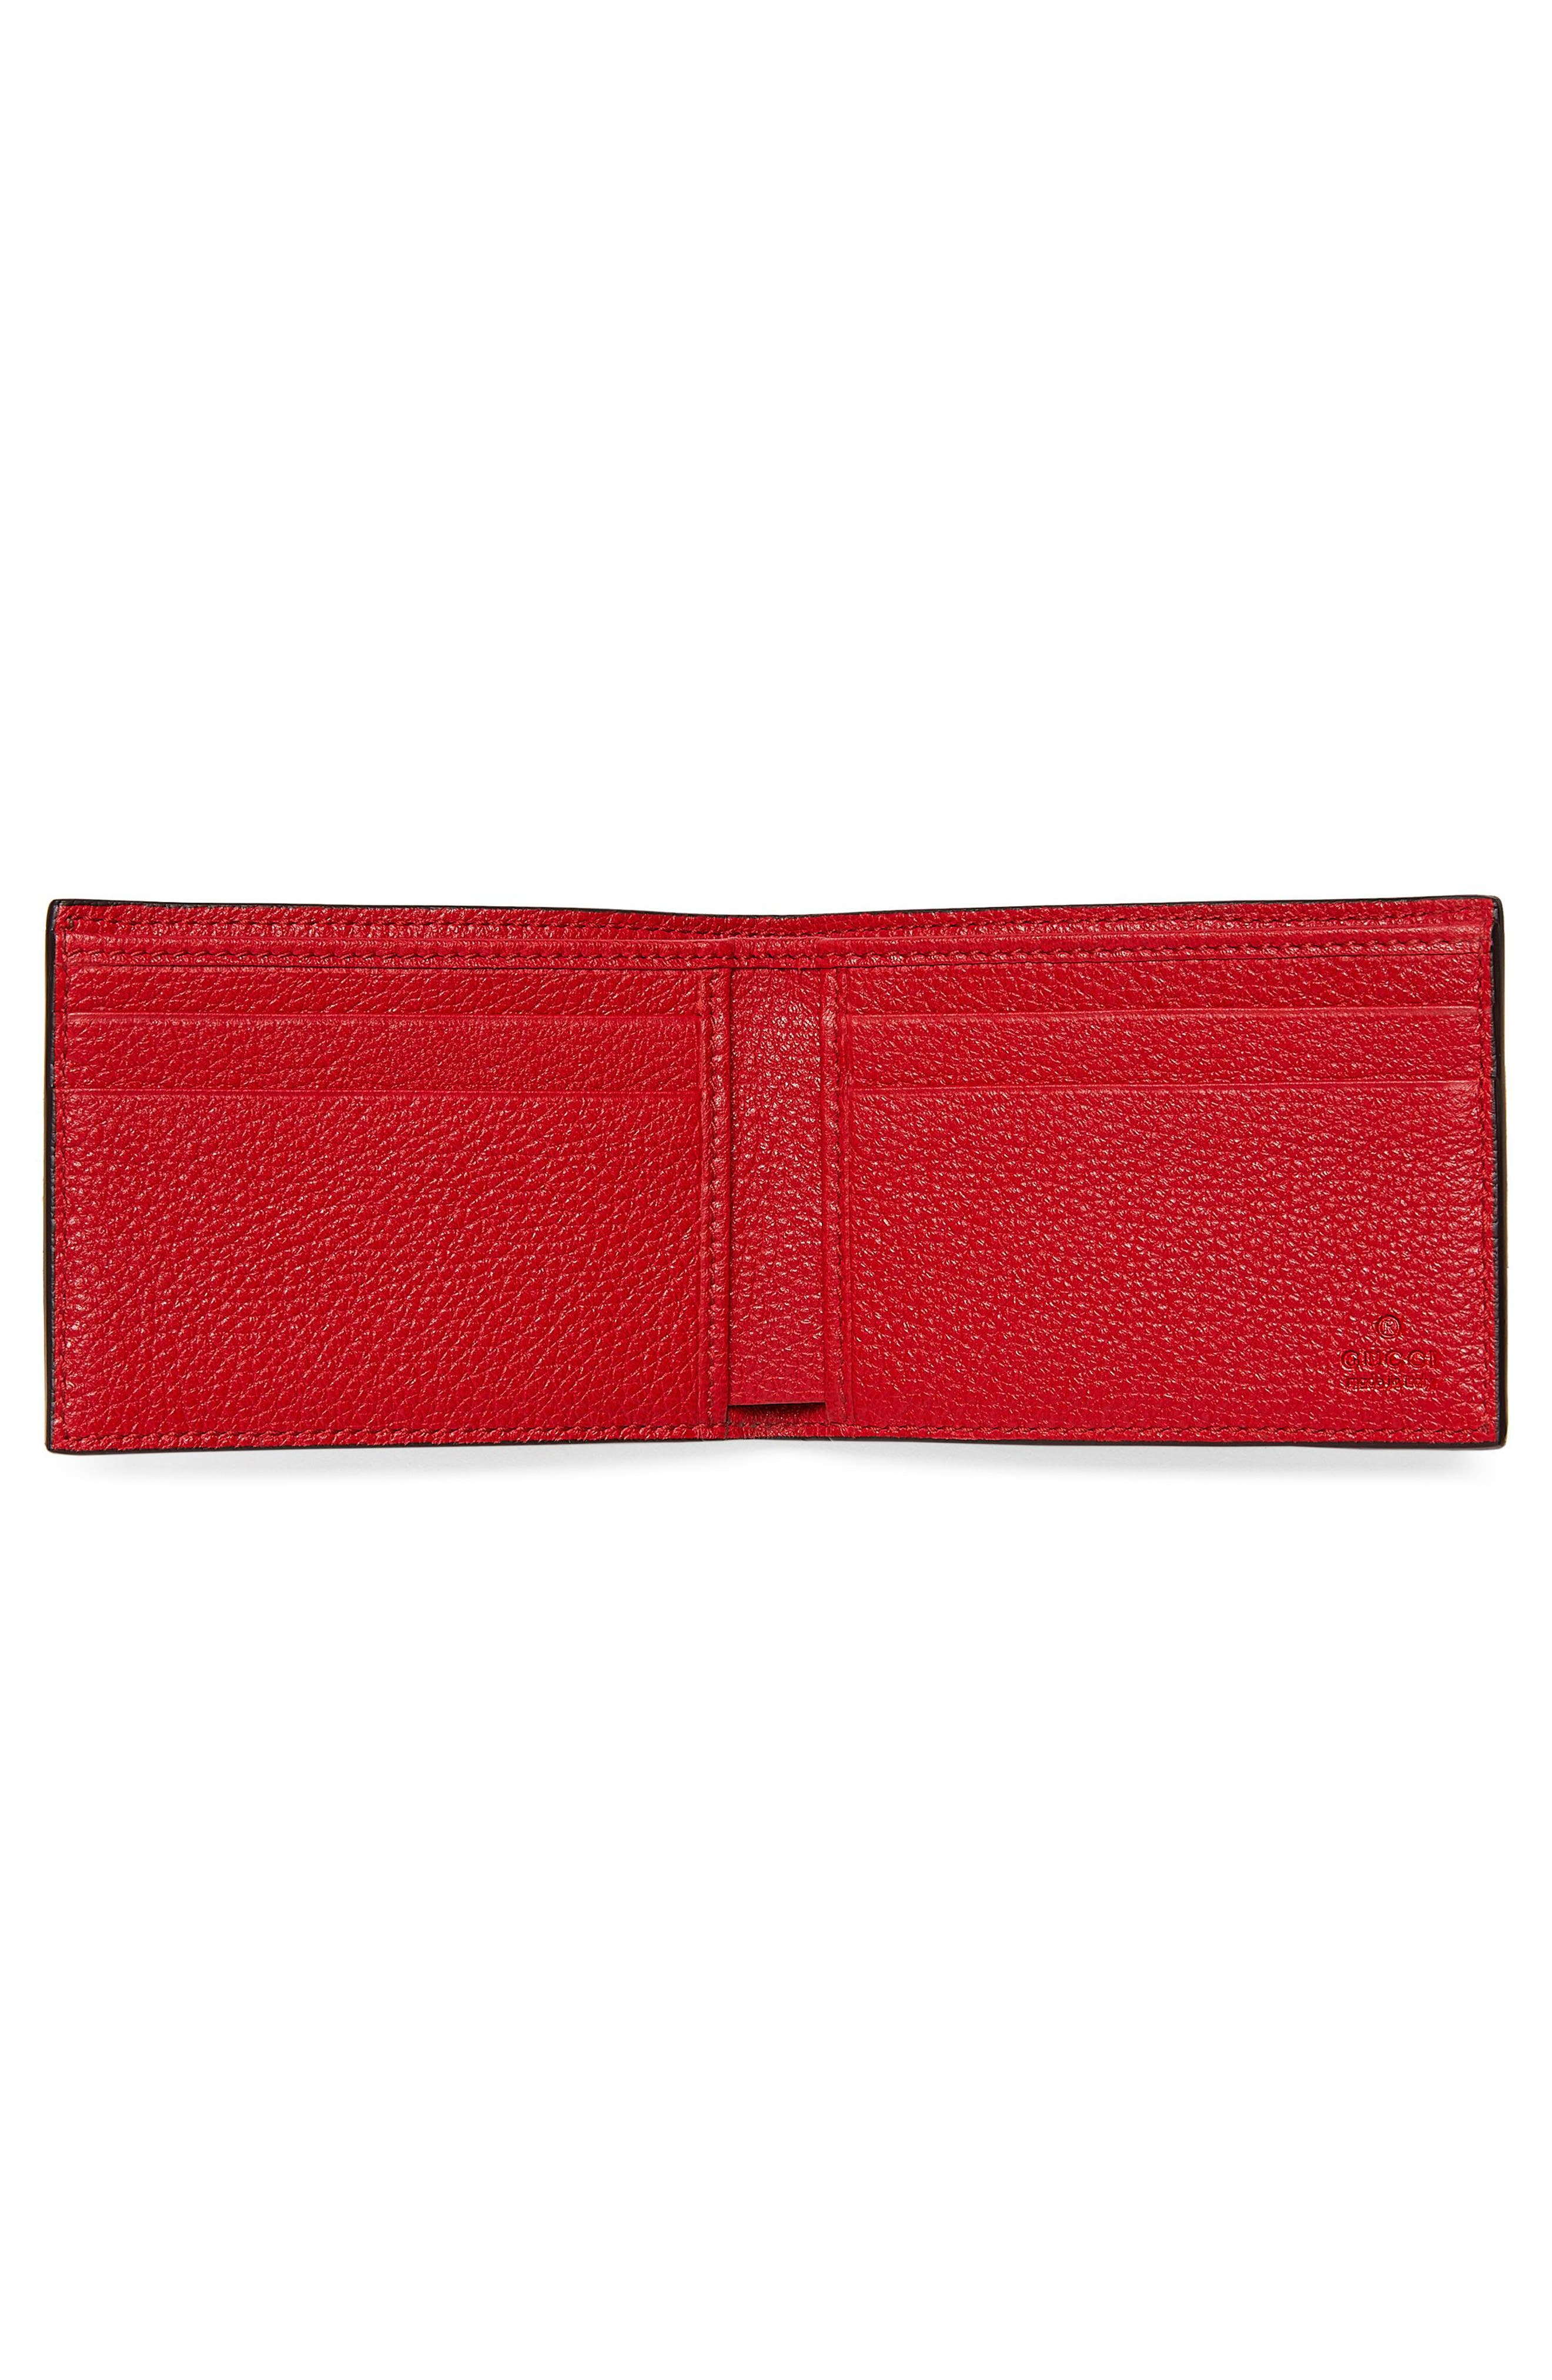 Wallet,                             Alternate thumbnail 2, color,                             Red